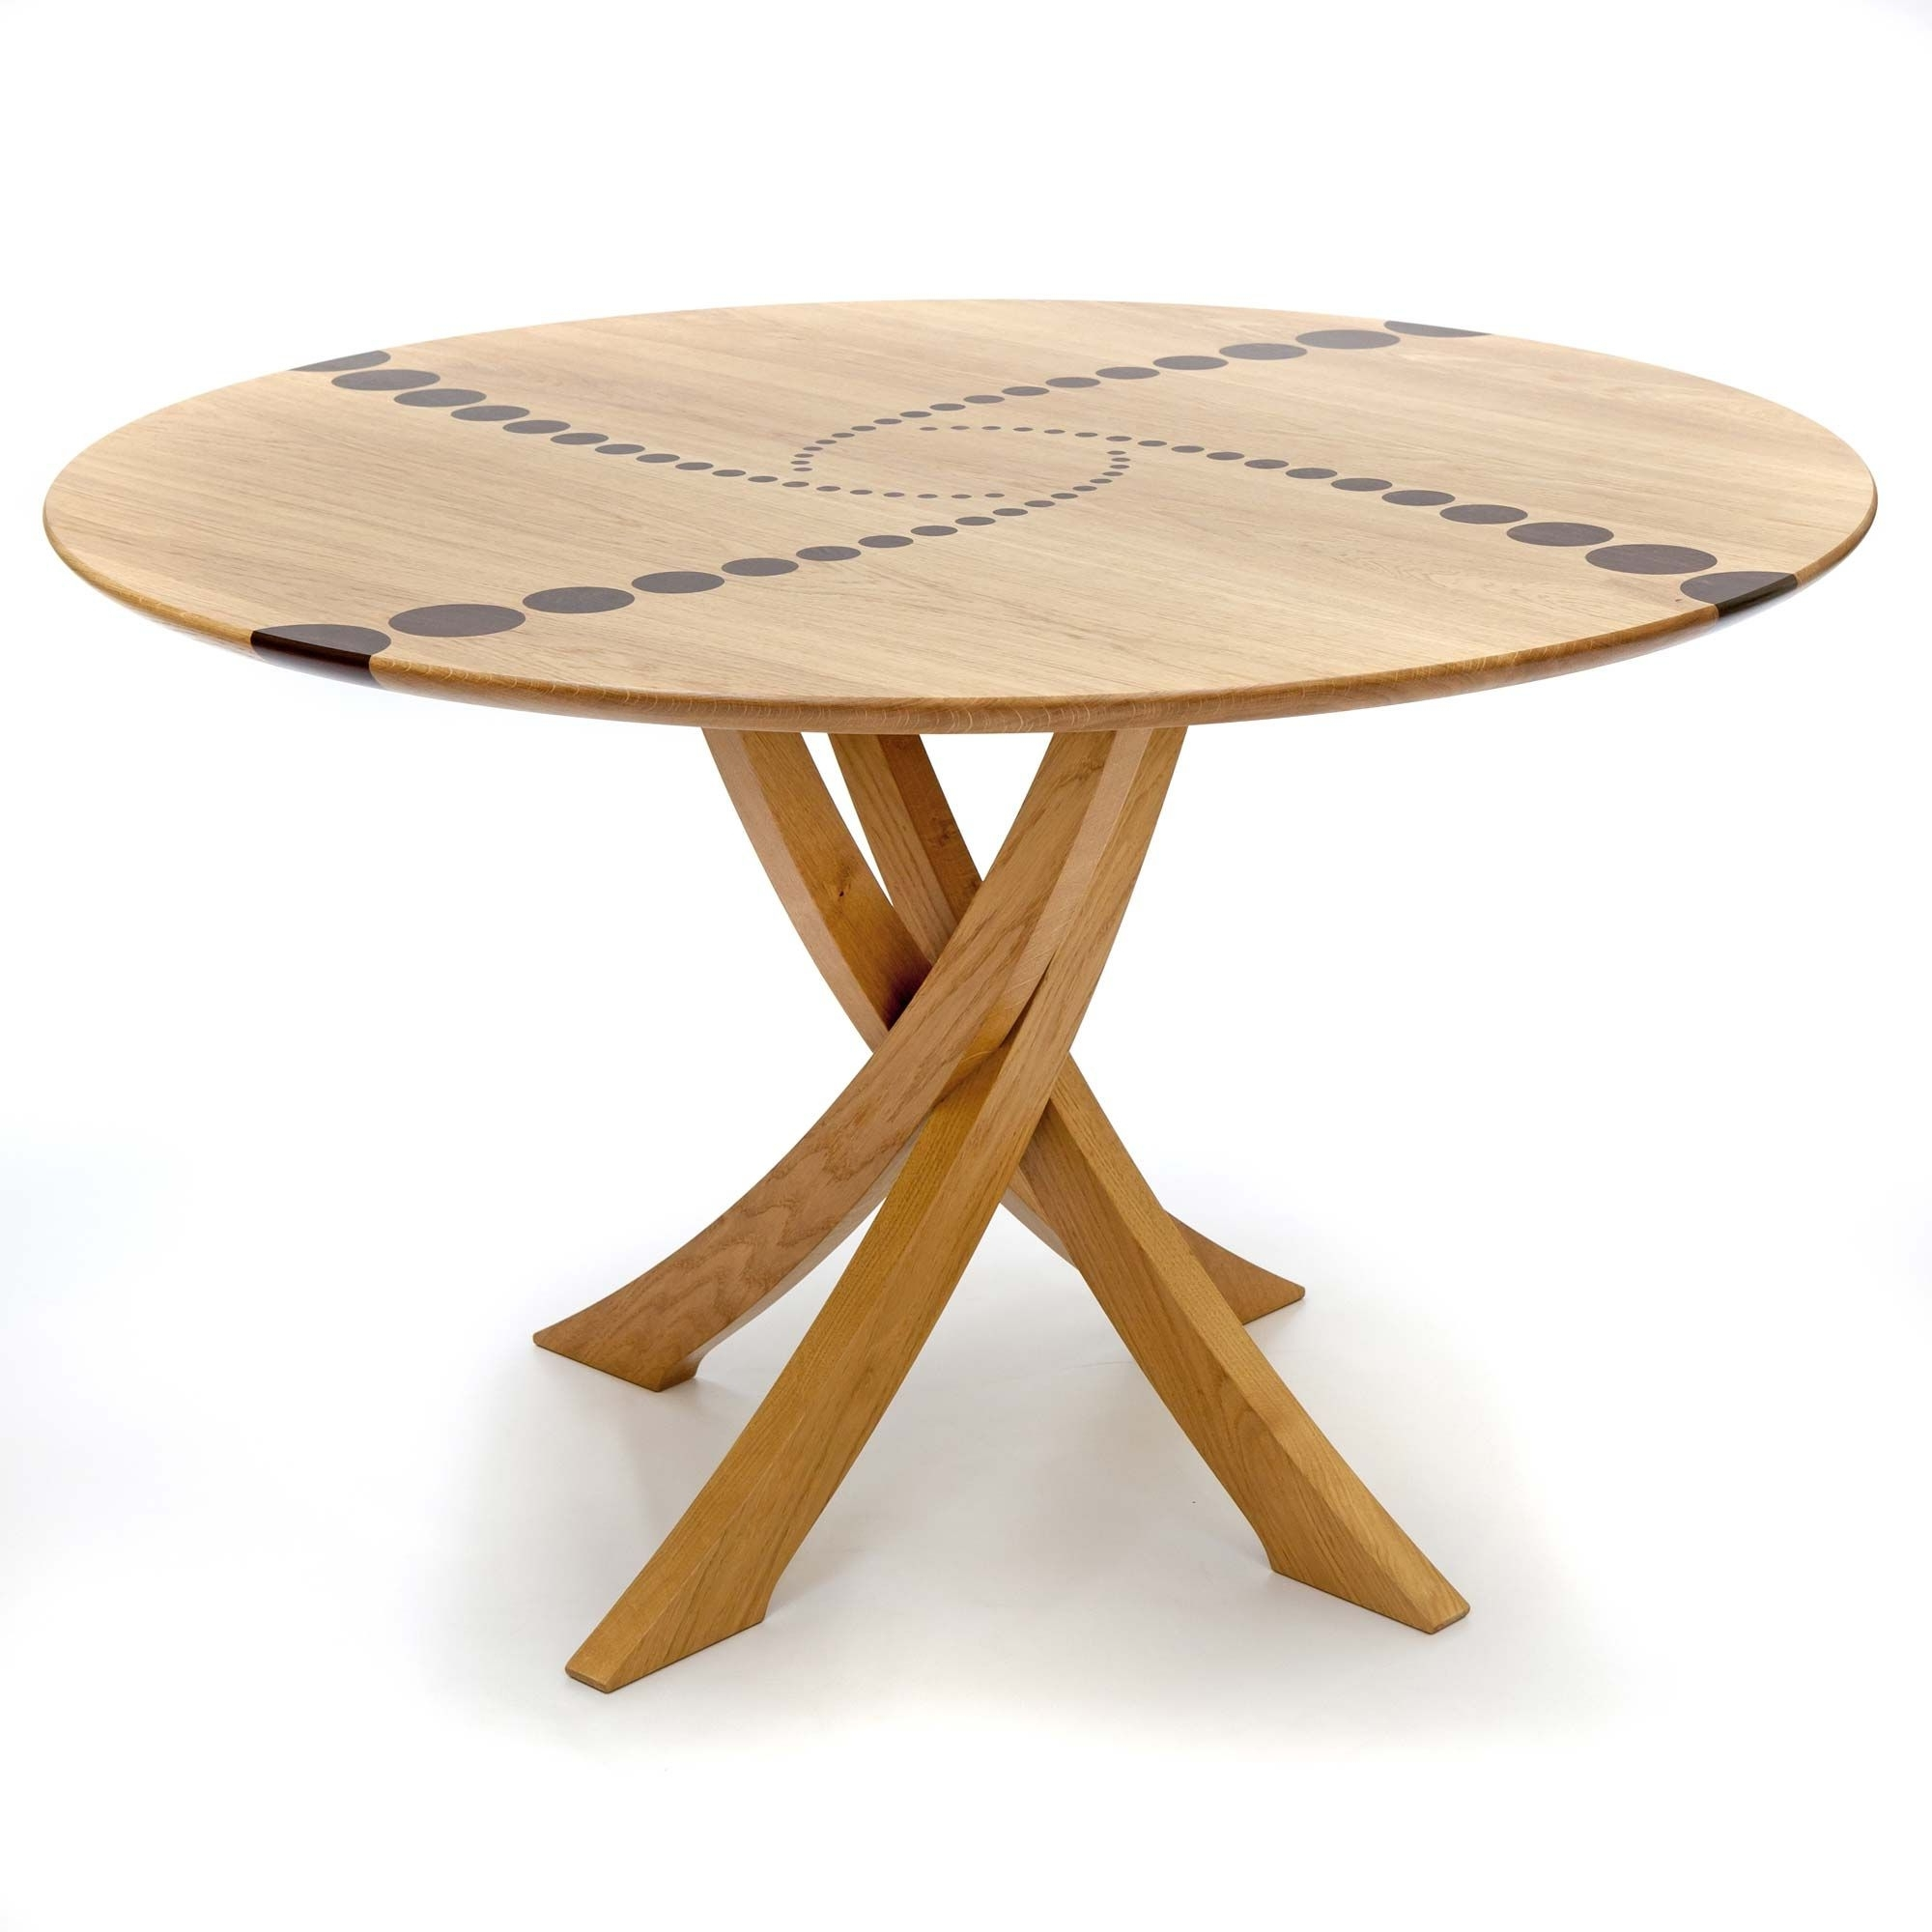 Wood Desk And Within 2017 Large Circular Dining Tables (View 19 of 25)